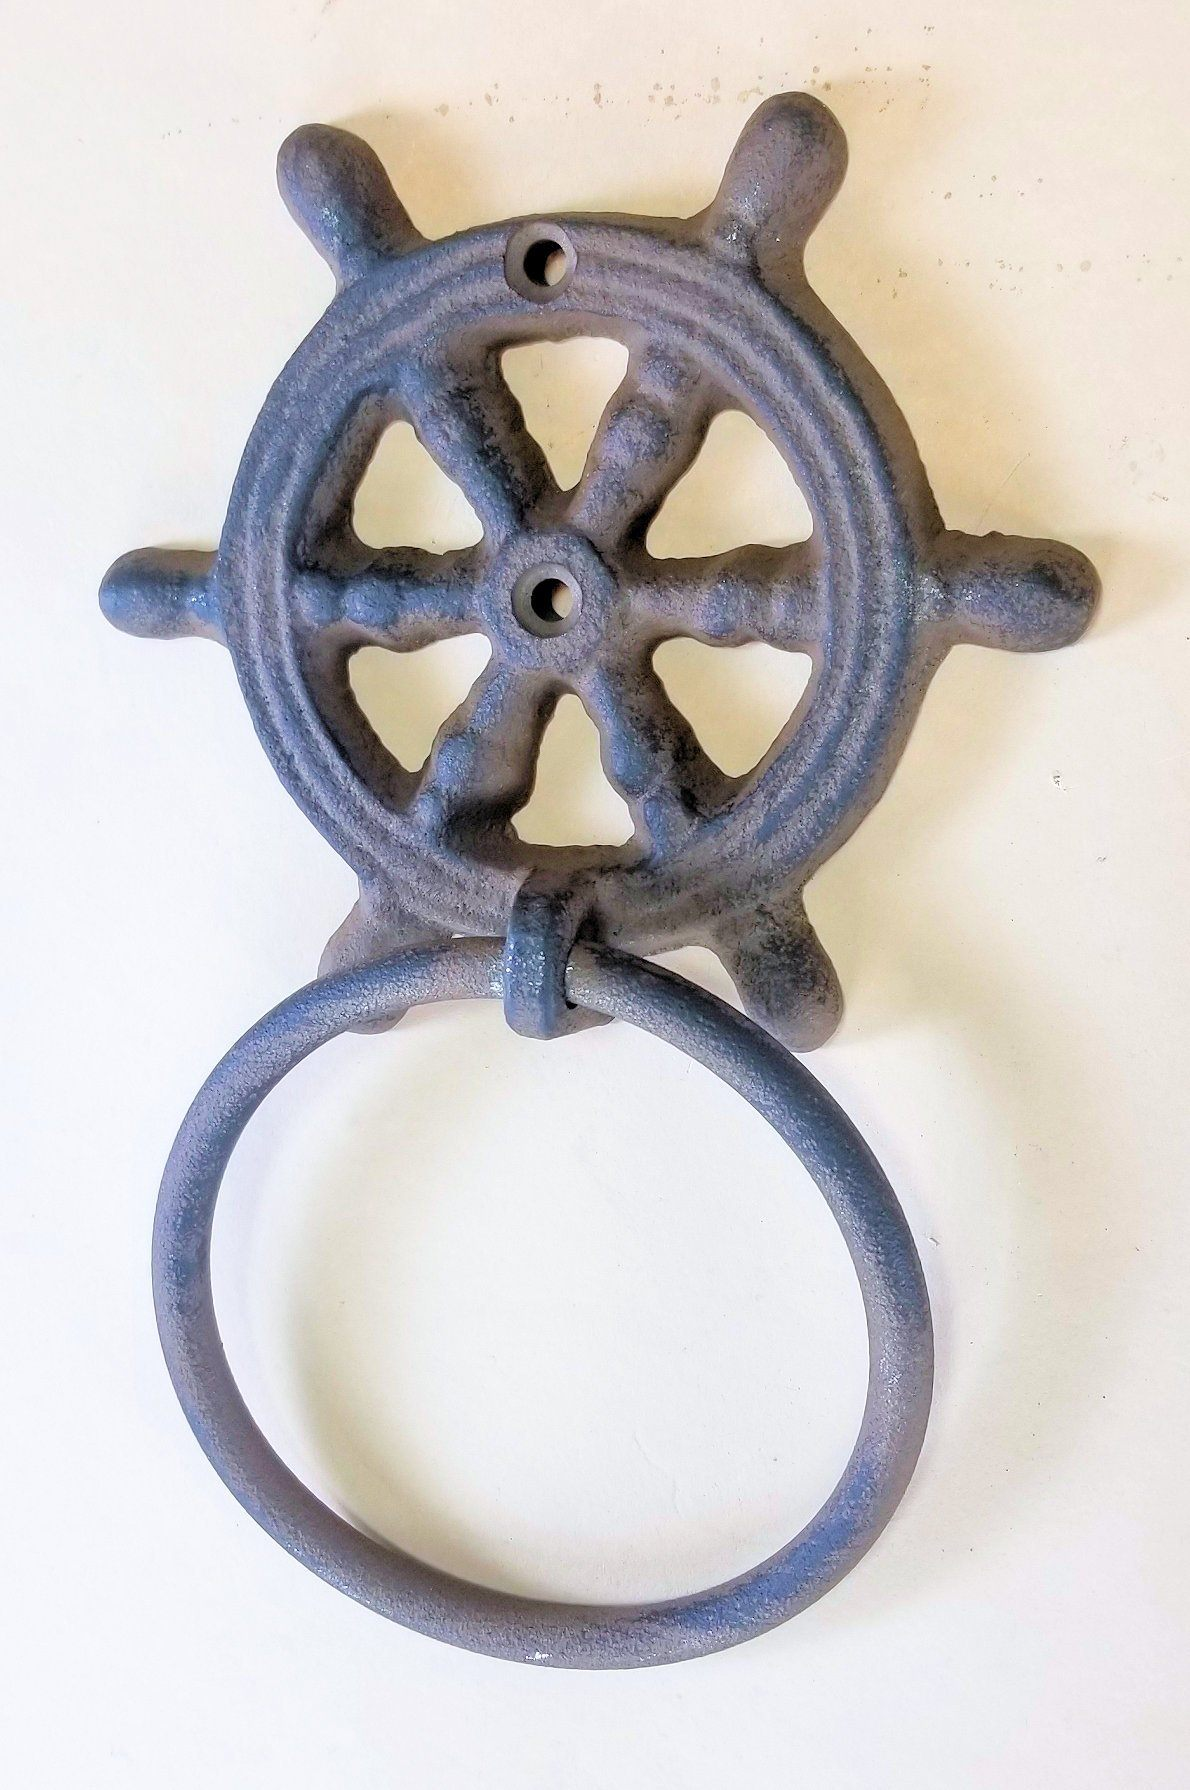 cast iron ships wheel towel ring for the bath carvers olde iron